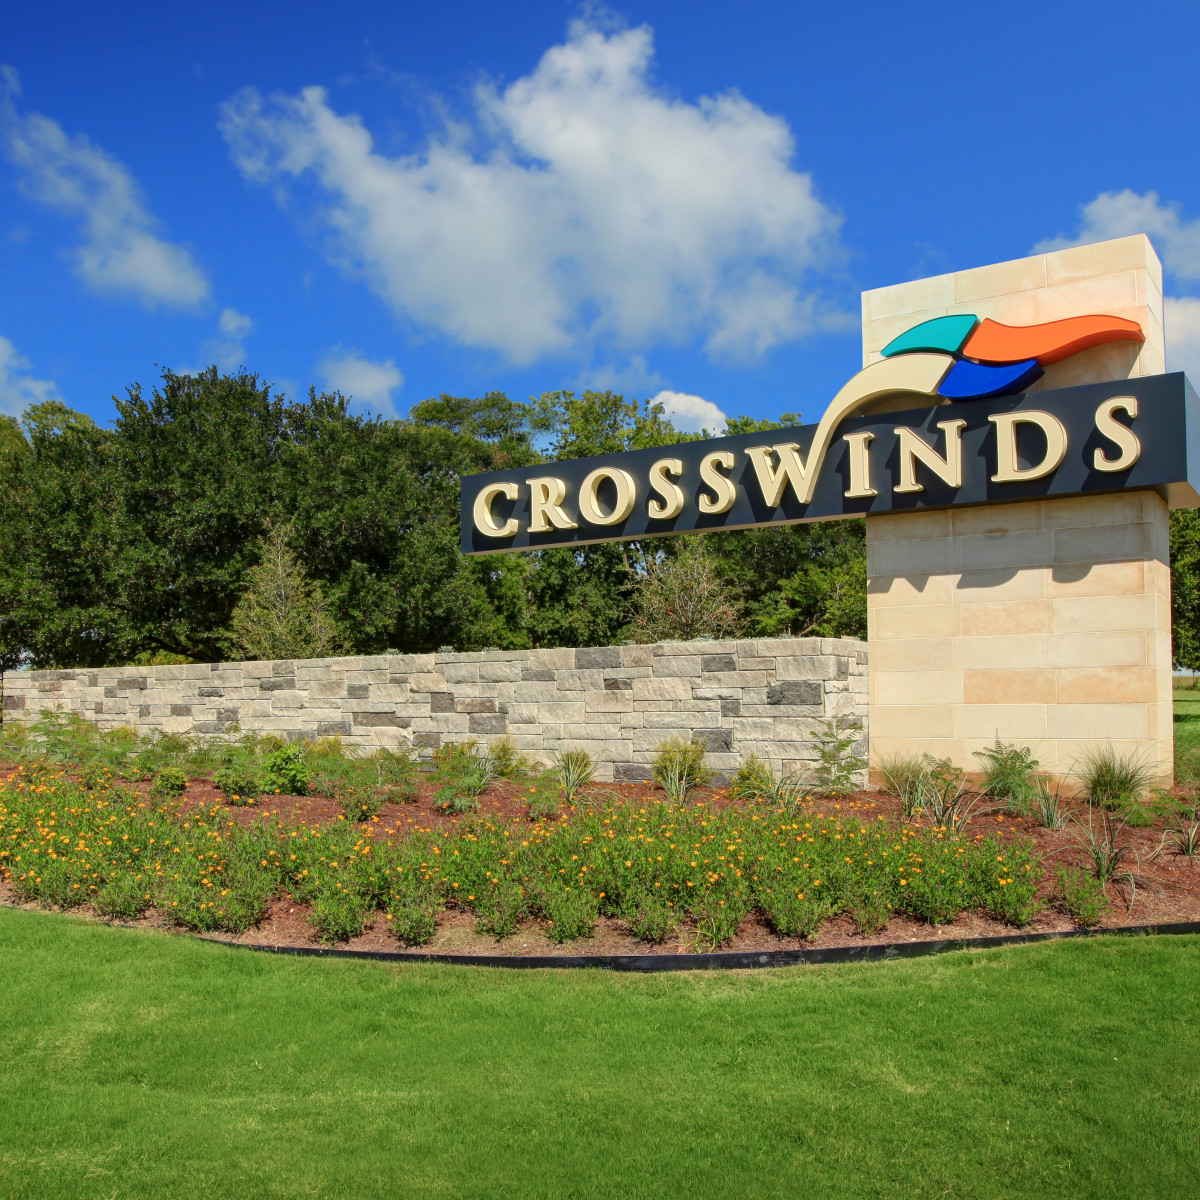 Crosswinds sign